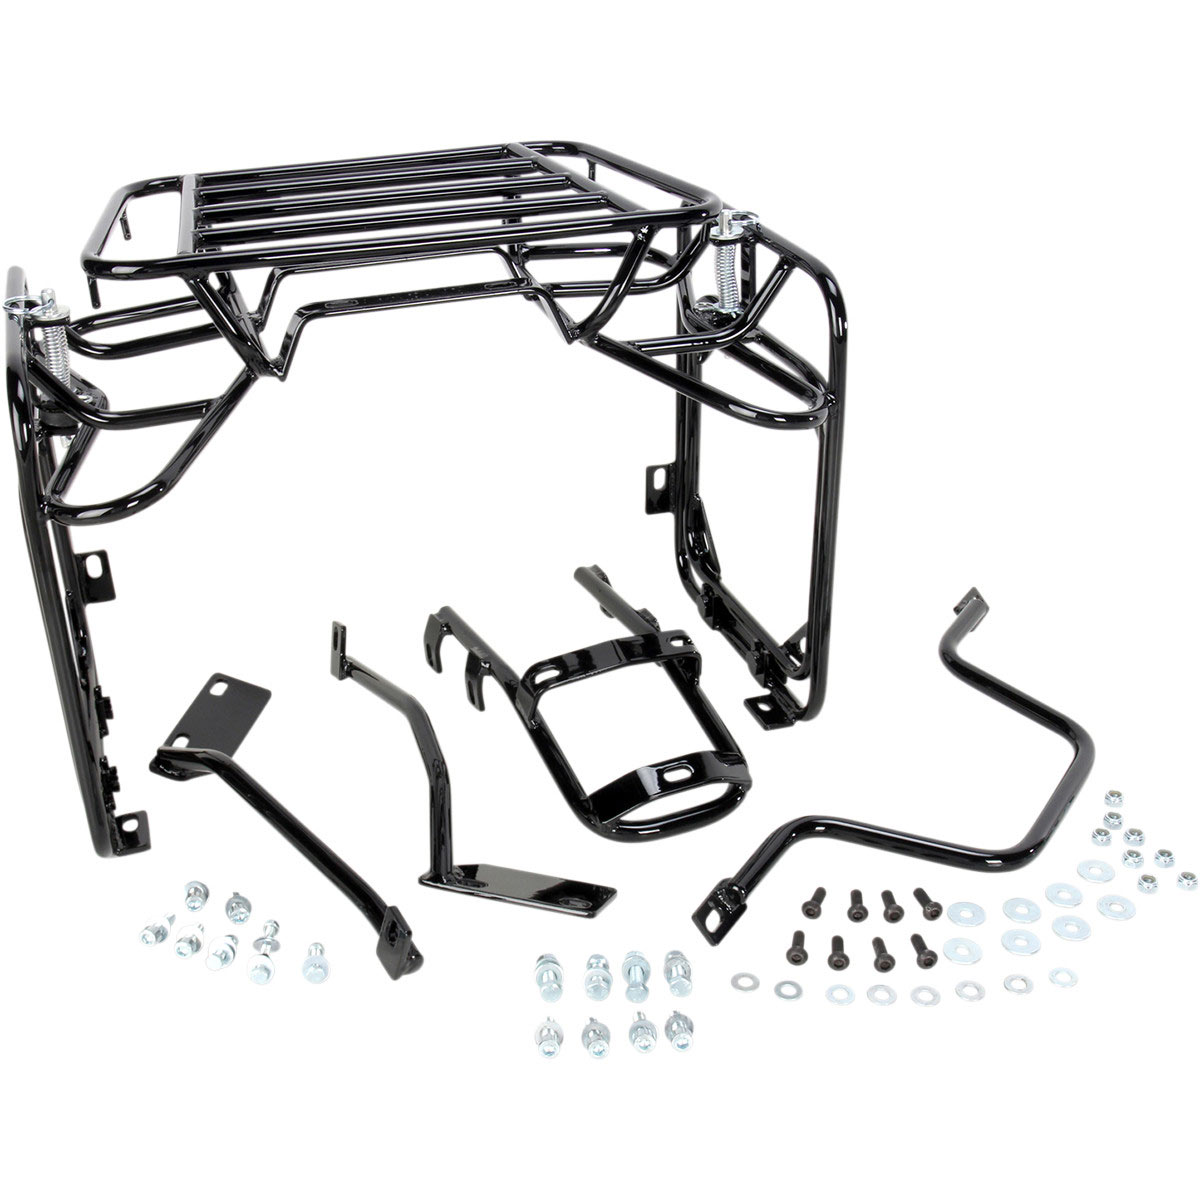 Moose Expedition Luggage Rack System For Xr650l 94 15